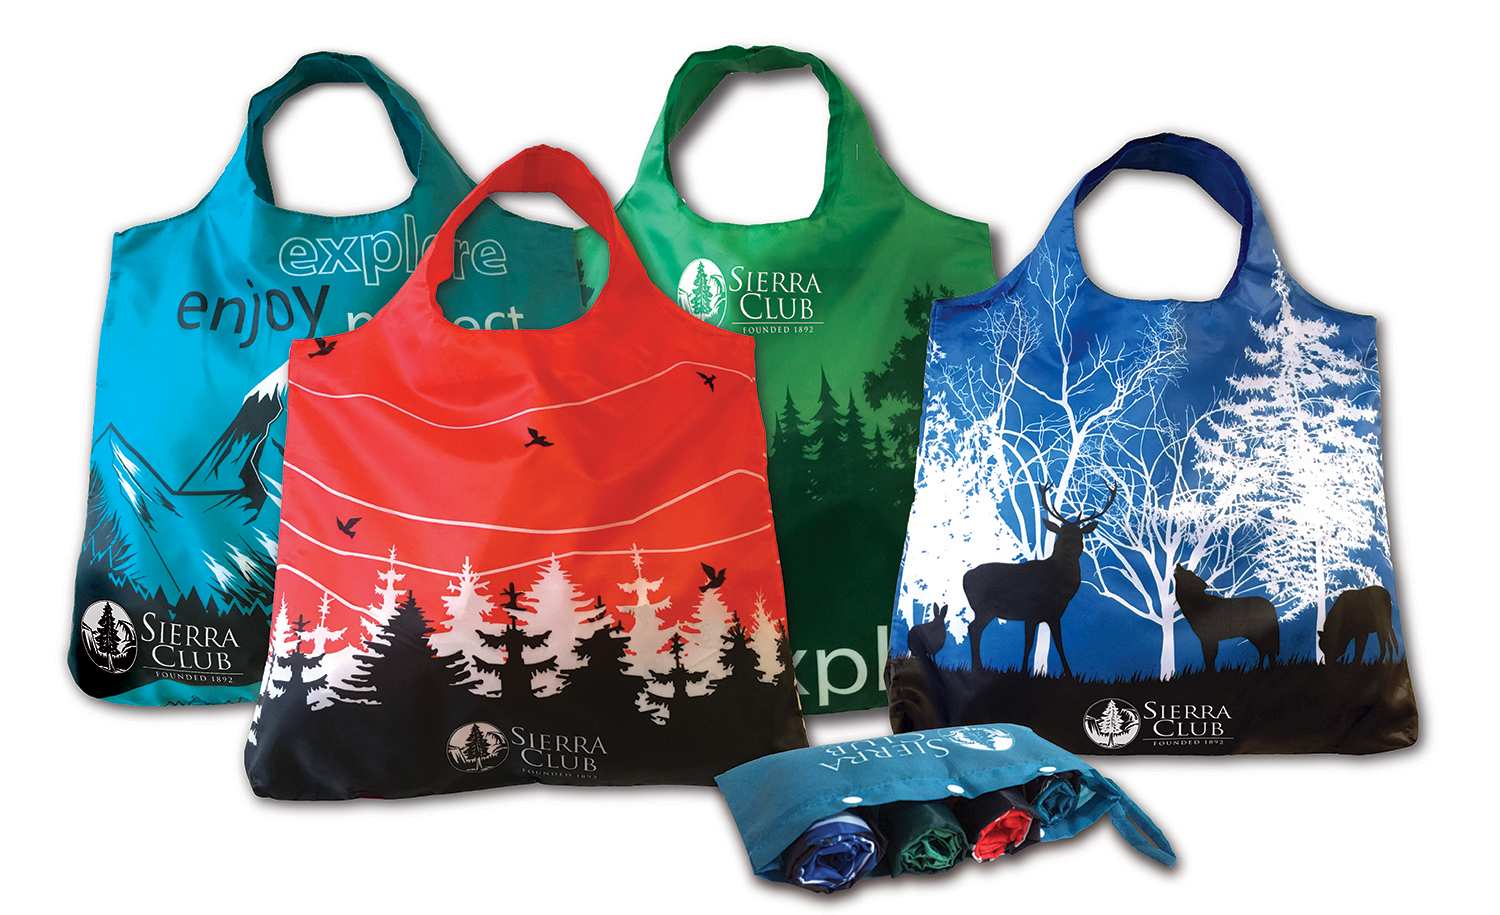 new eco chic reusable shopping bags sierra club online store. Black Bedroom Furniture Sets. Home Design Ideas